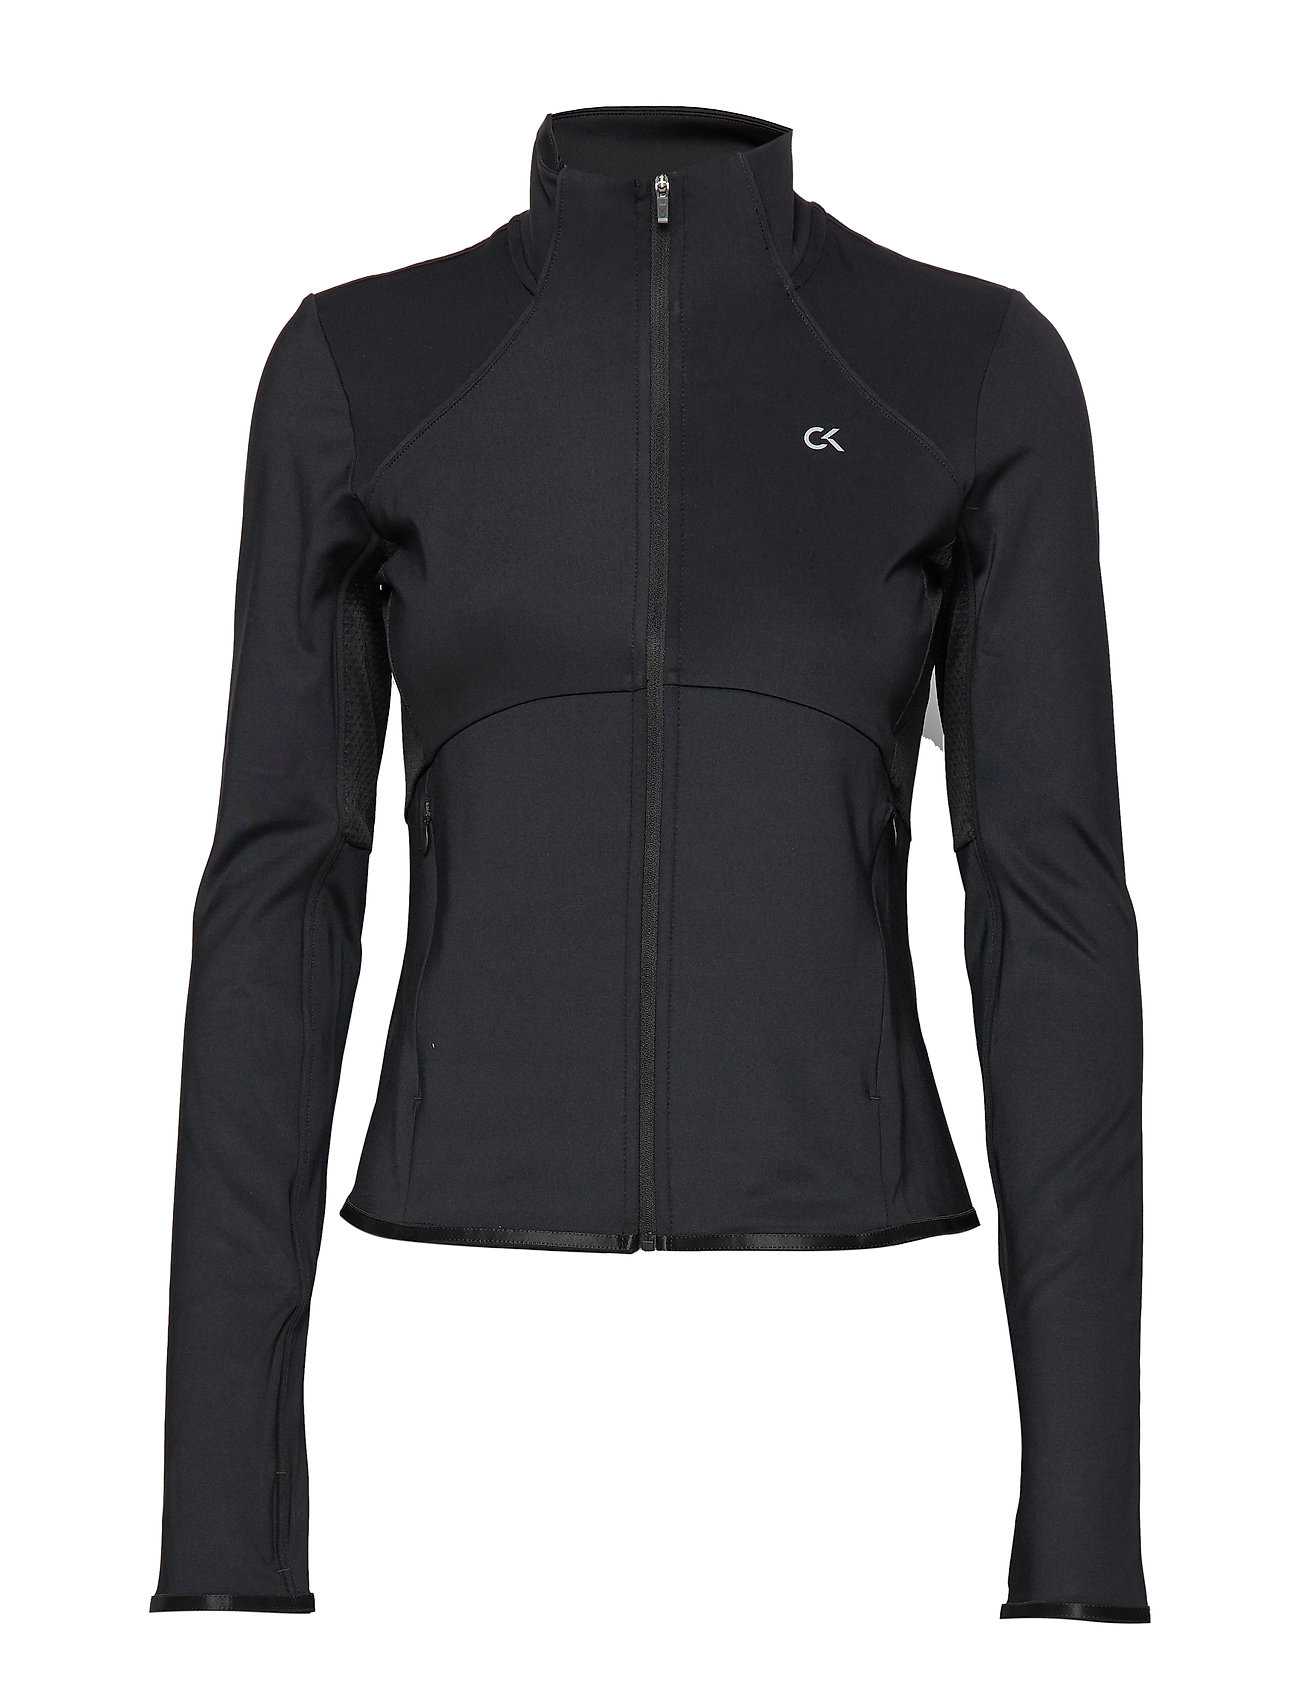 Calvin Klein Performance WINDJACKET - CK BLACK